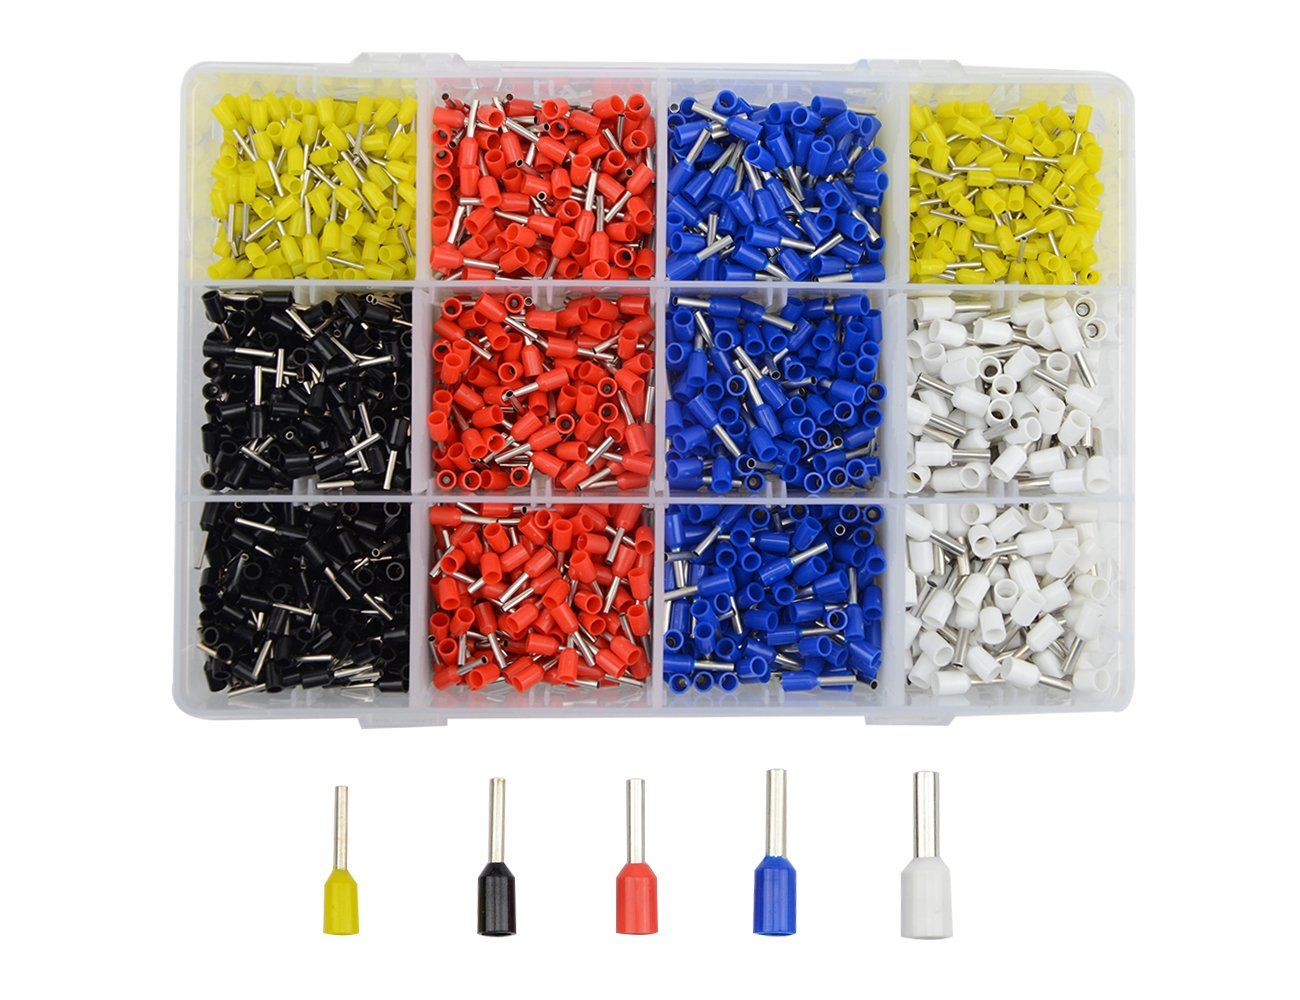 WGCD 1800 PCS Ferrule Wire Copper Crimp Connector Insulated Cord Pin End Terminal Assortment Kit 14 16 18 20 22 AWG